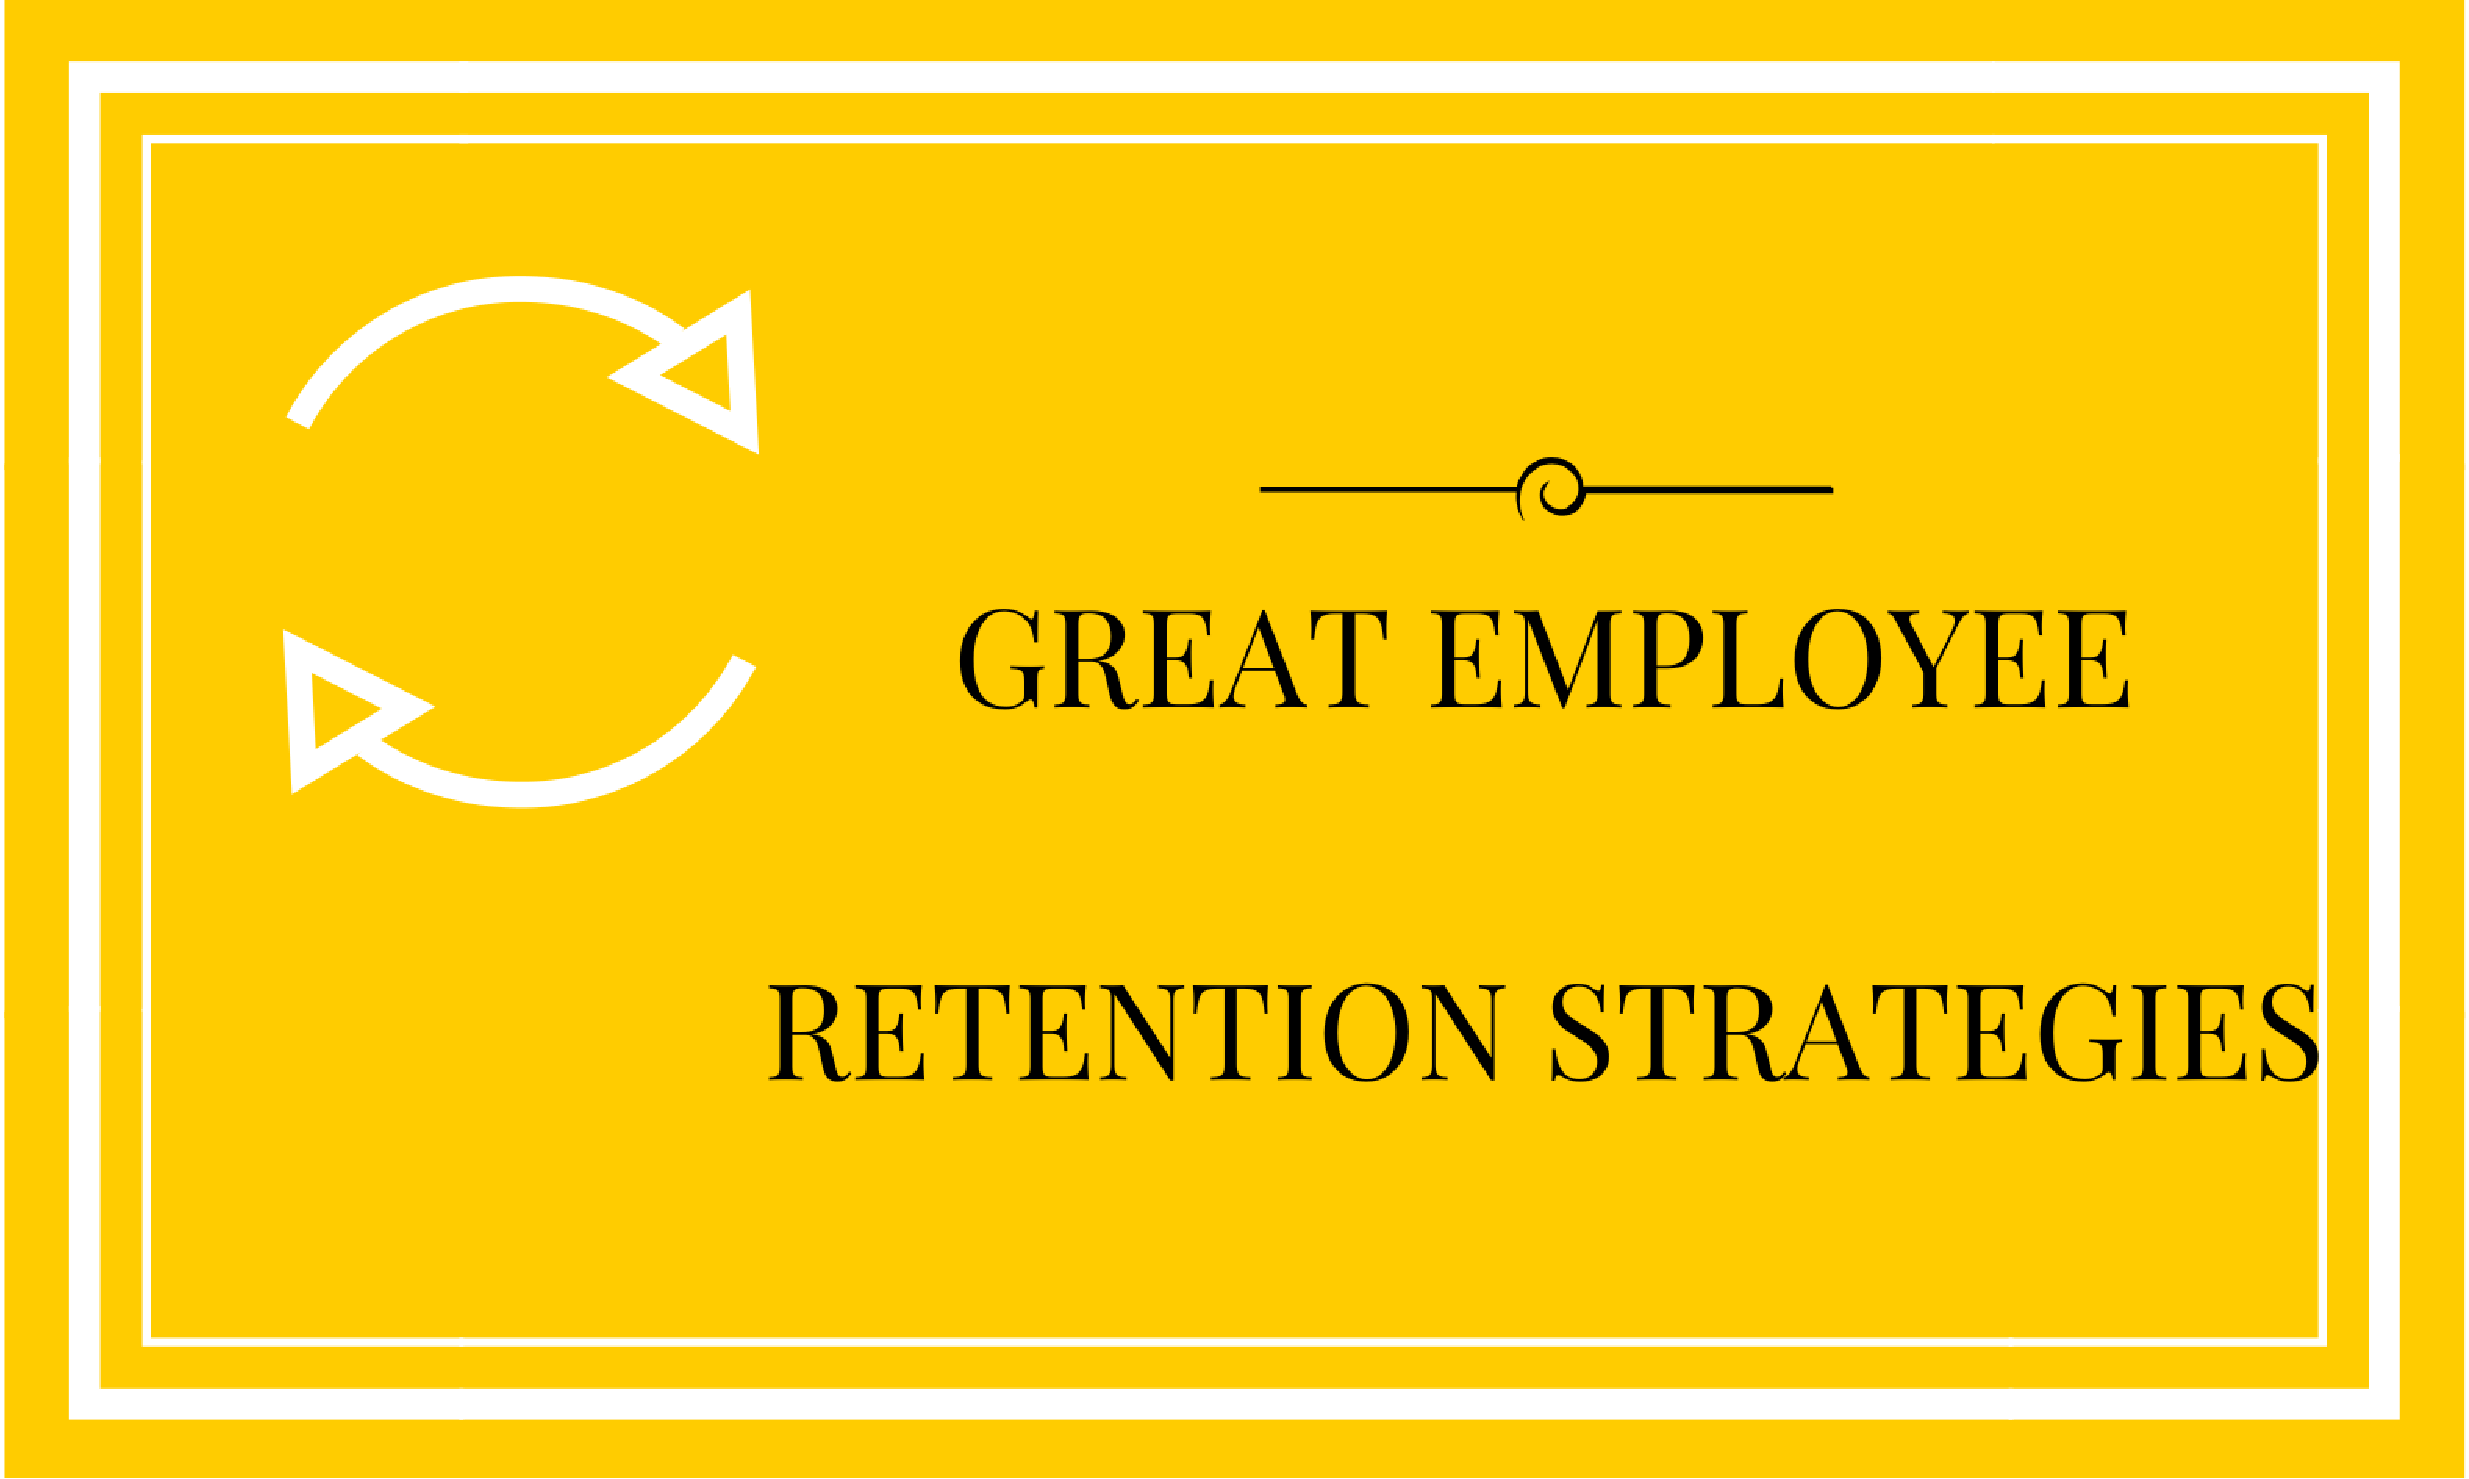 Great Employee Retention Strategies